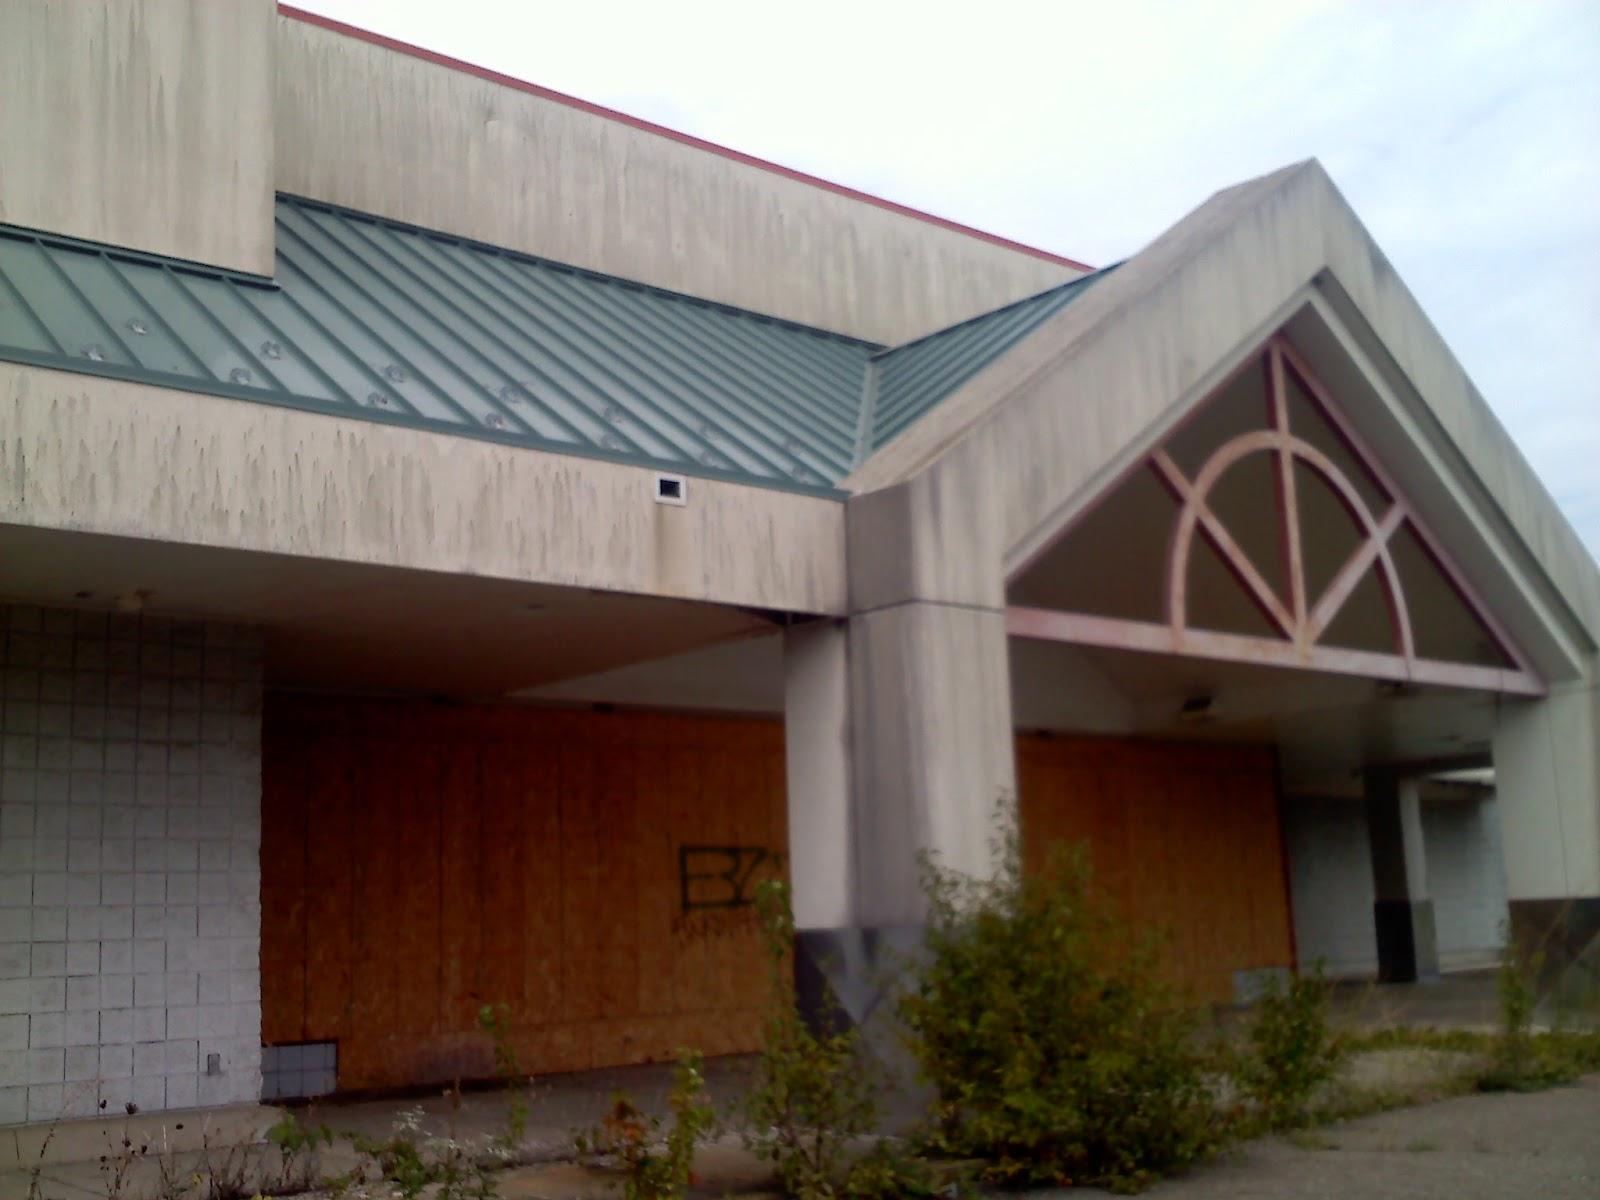 Dead and Dying retail: Closed Super Kmart stores in Ohio